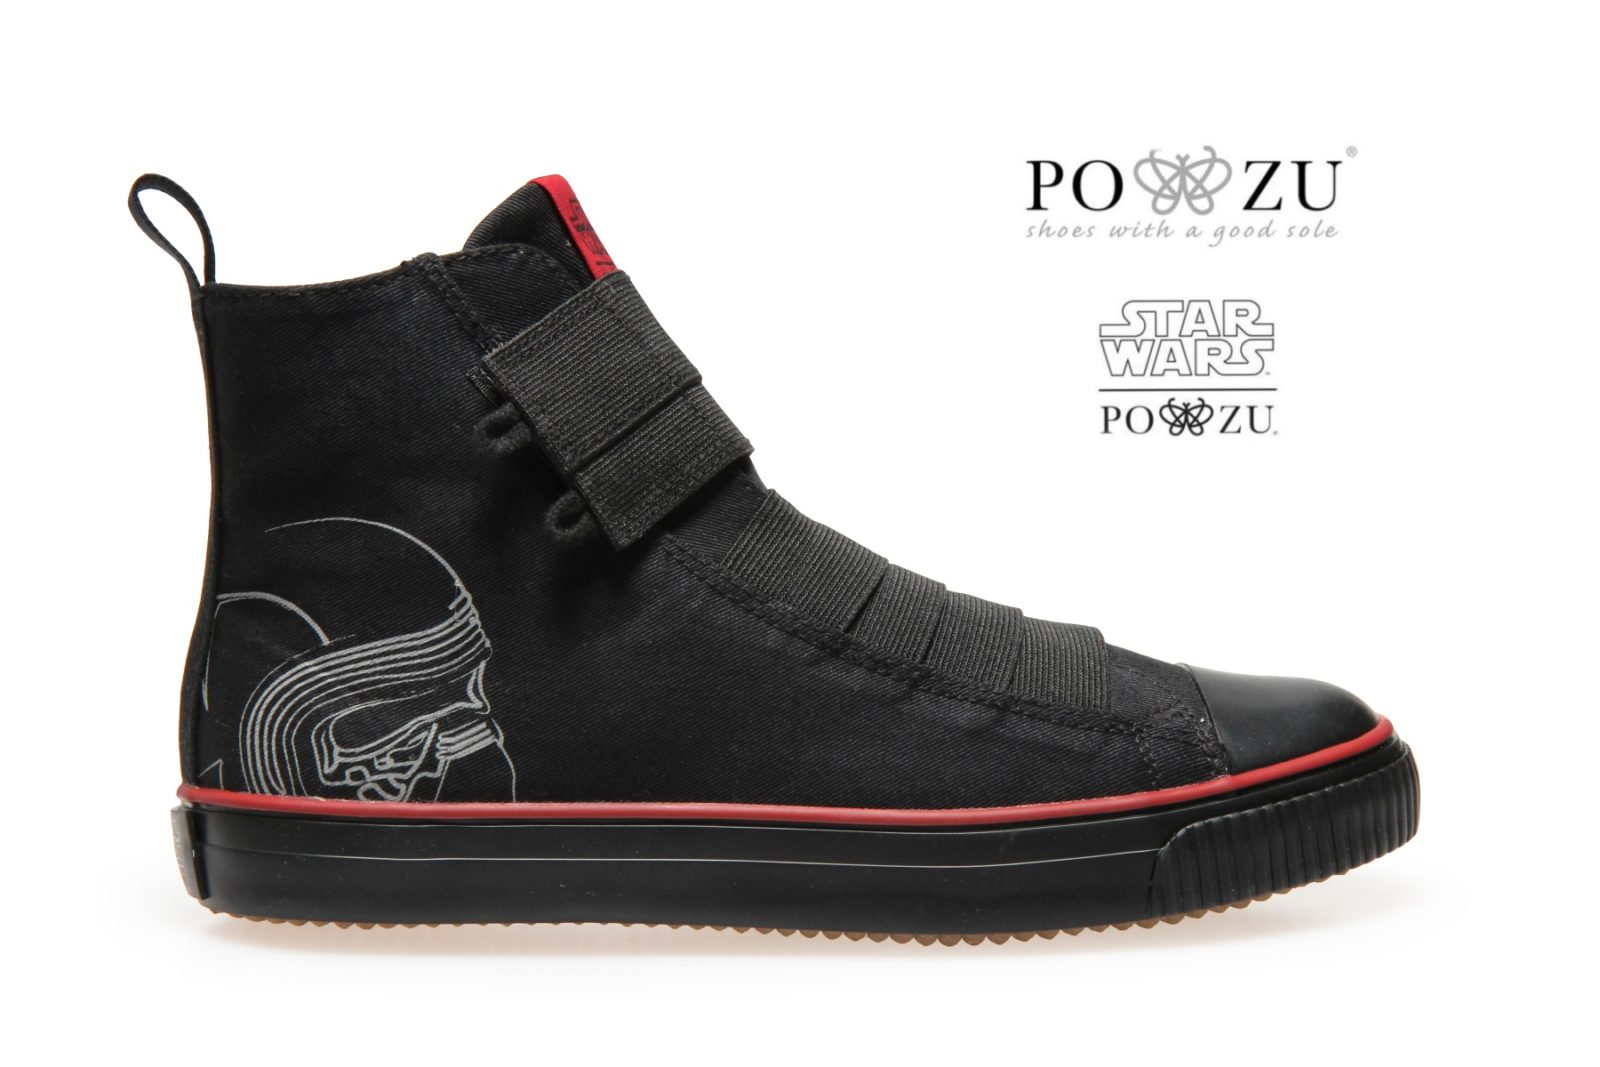 New Po-Zu x Star Wars Kylo Ren Sneakers!